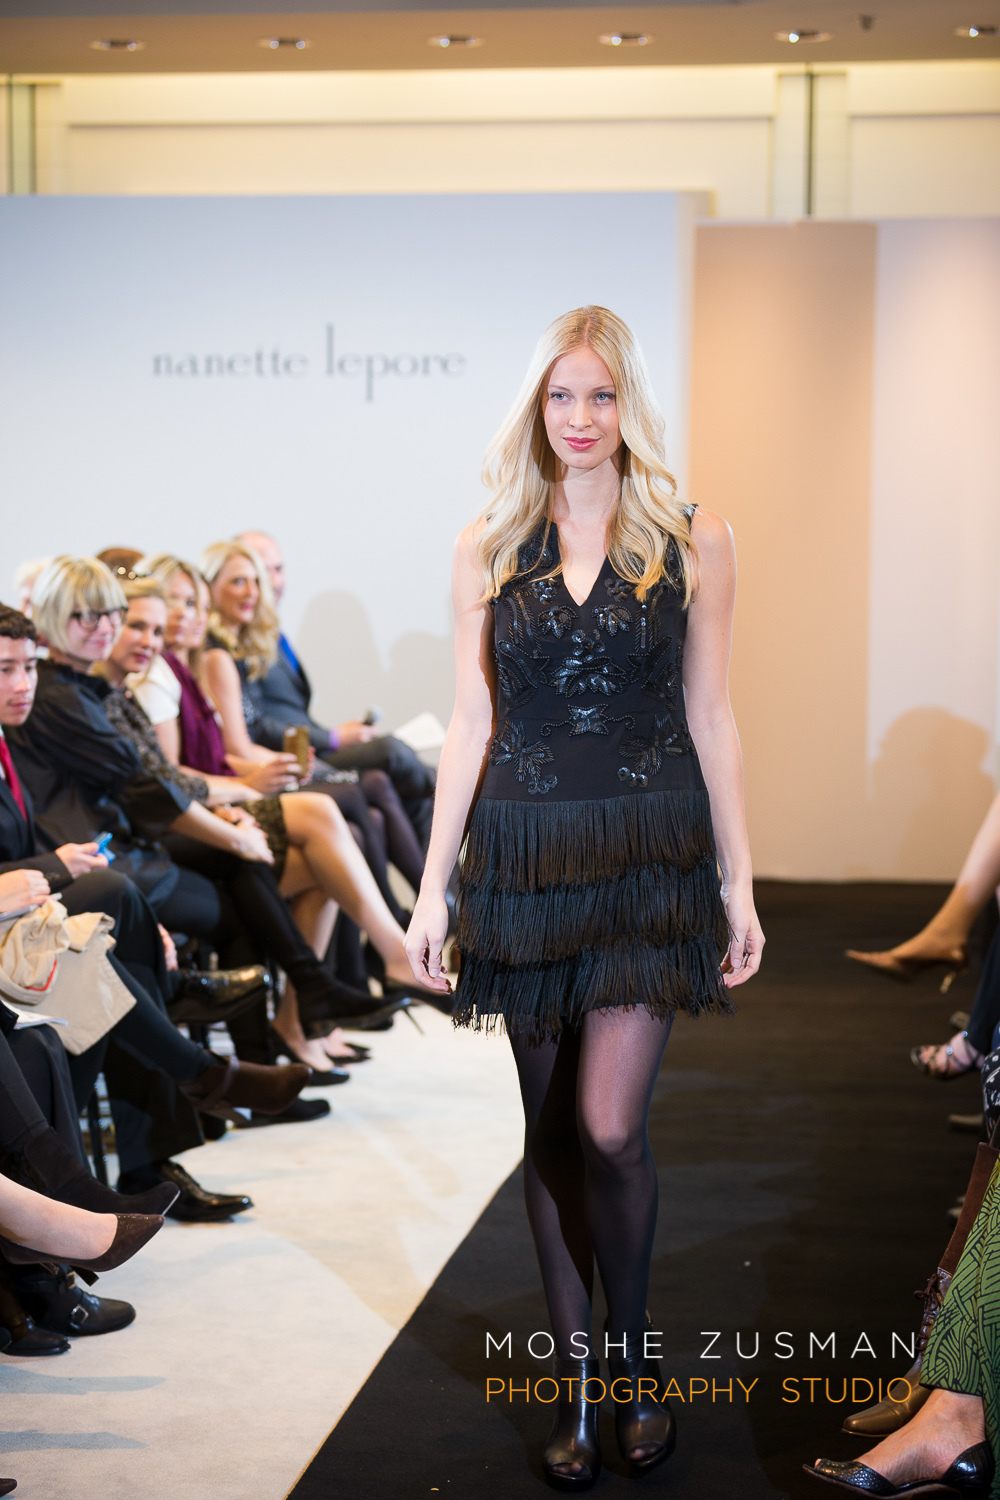 Nanette-Lepore-Saks-Fifth-Avenue-Fashion-Show-Moshe-Zusman-Photography-09.jpg